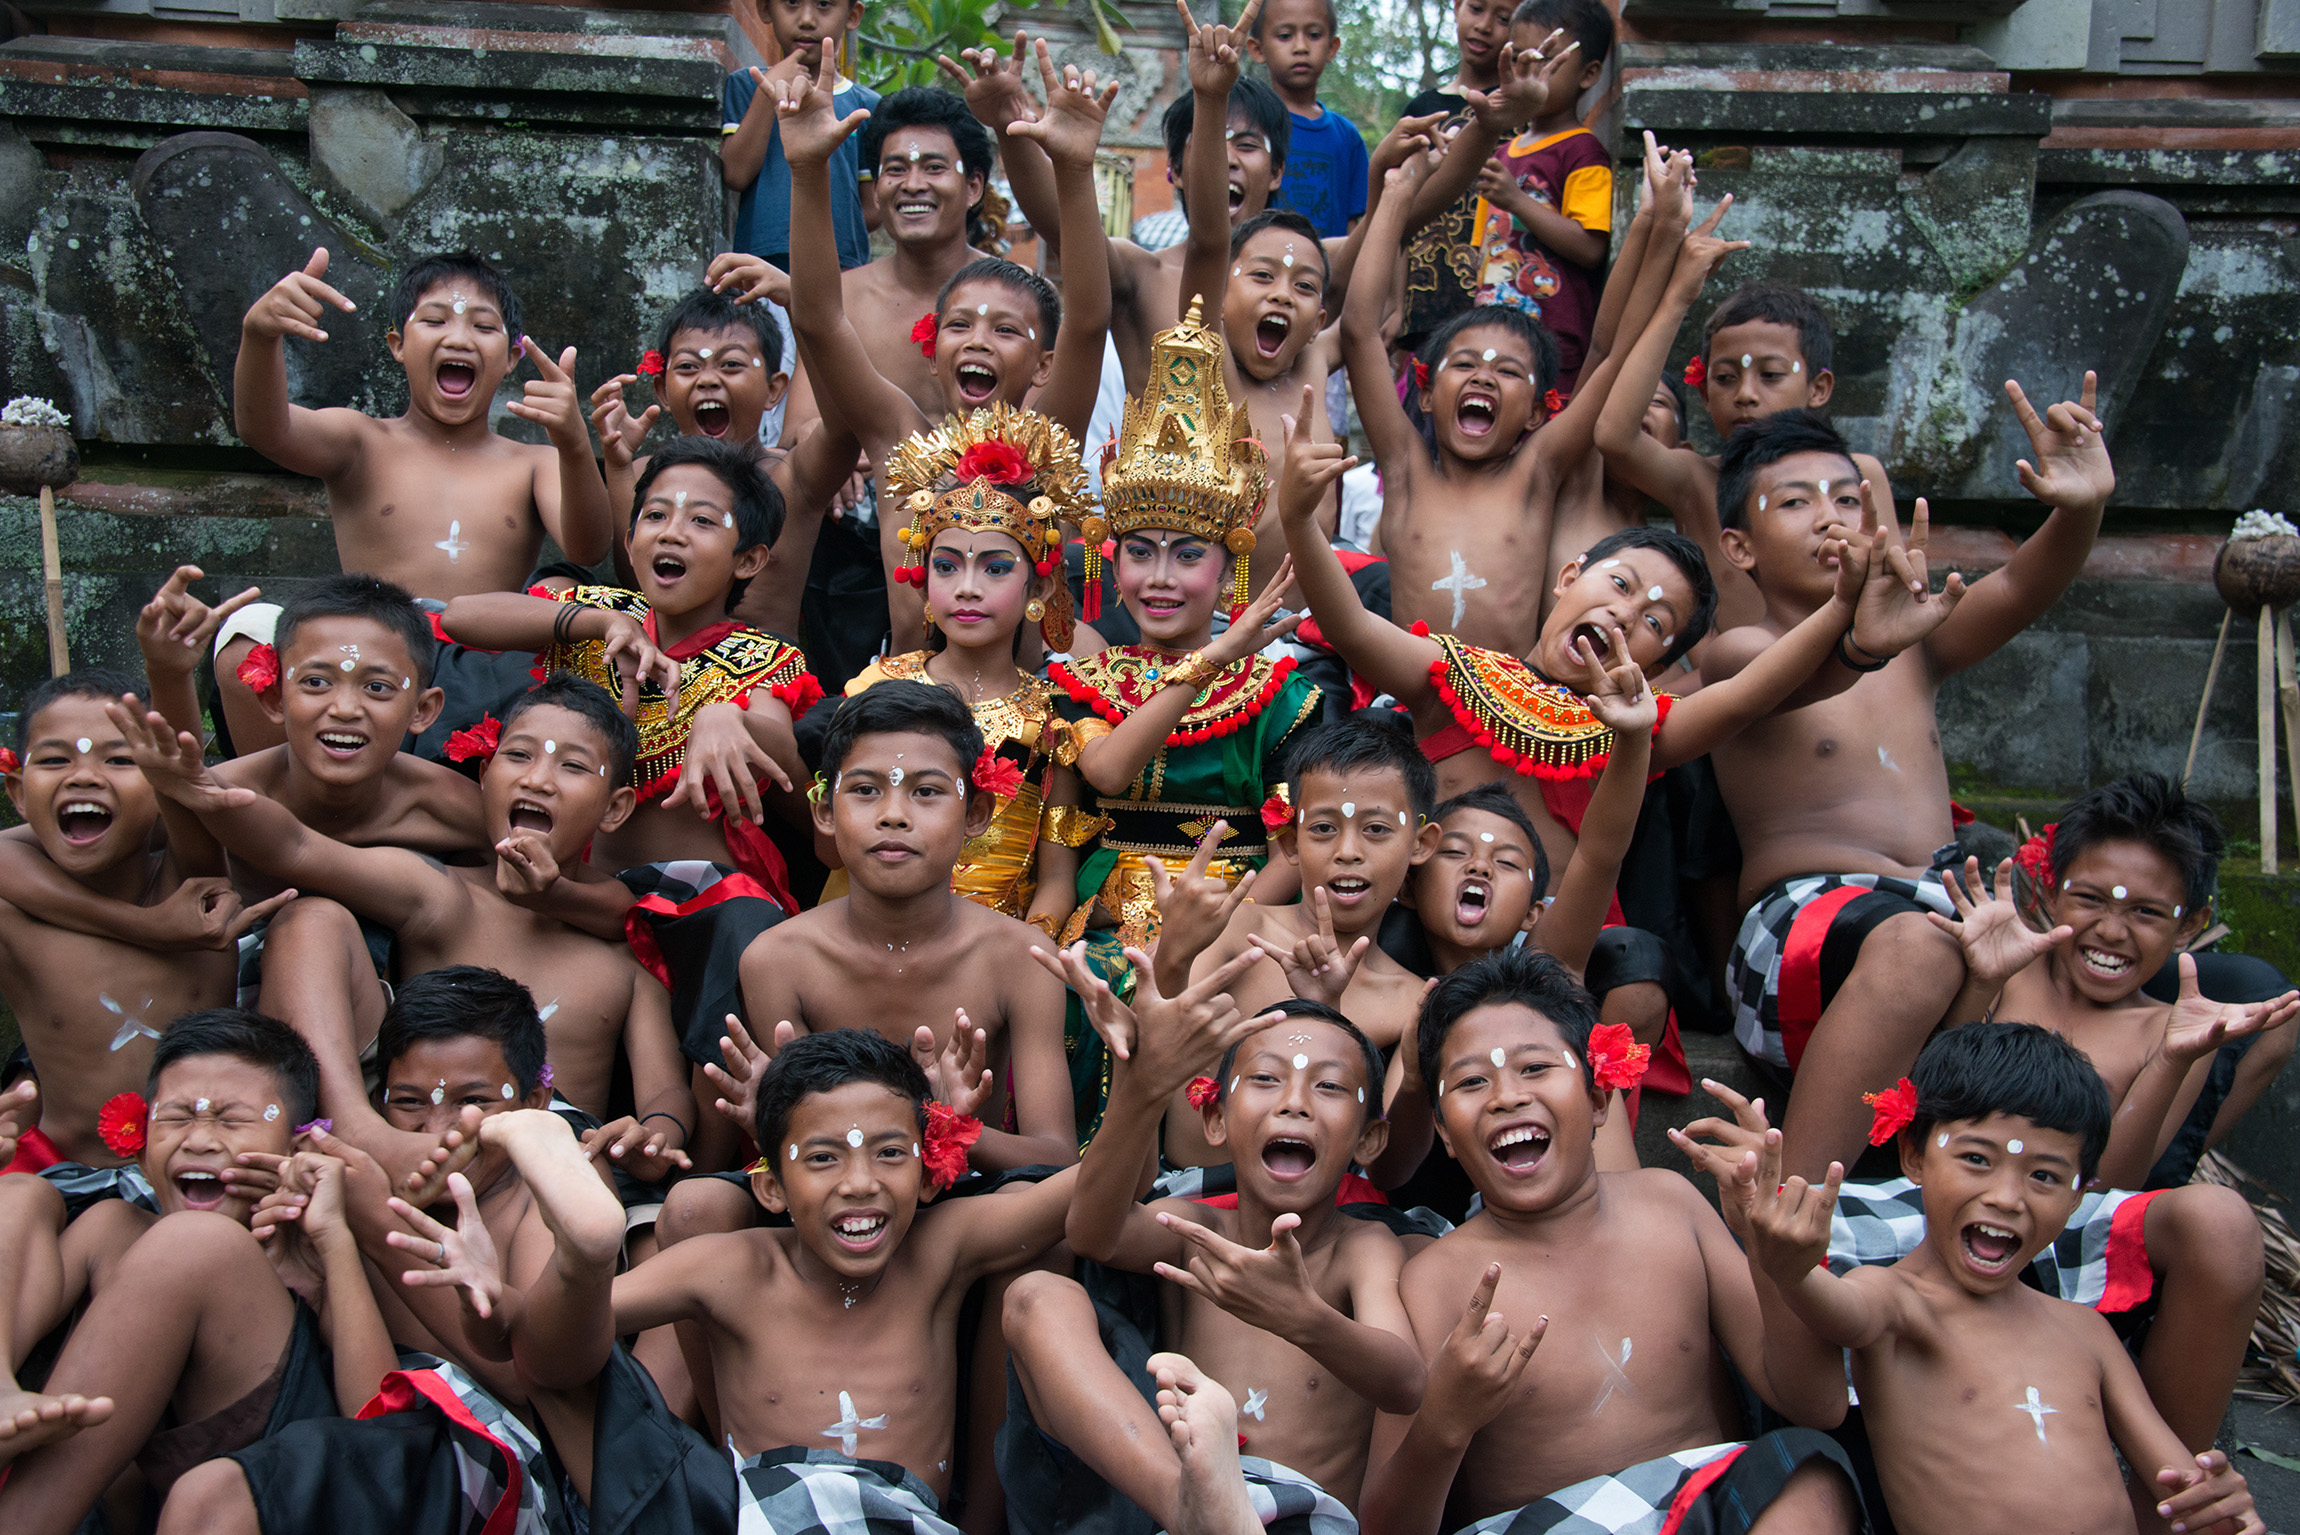 BALI KIDS These kids were very excited as they were about to perform the Kecak dance for the first time in their lives, in a small village near Ubud.